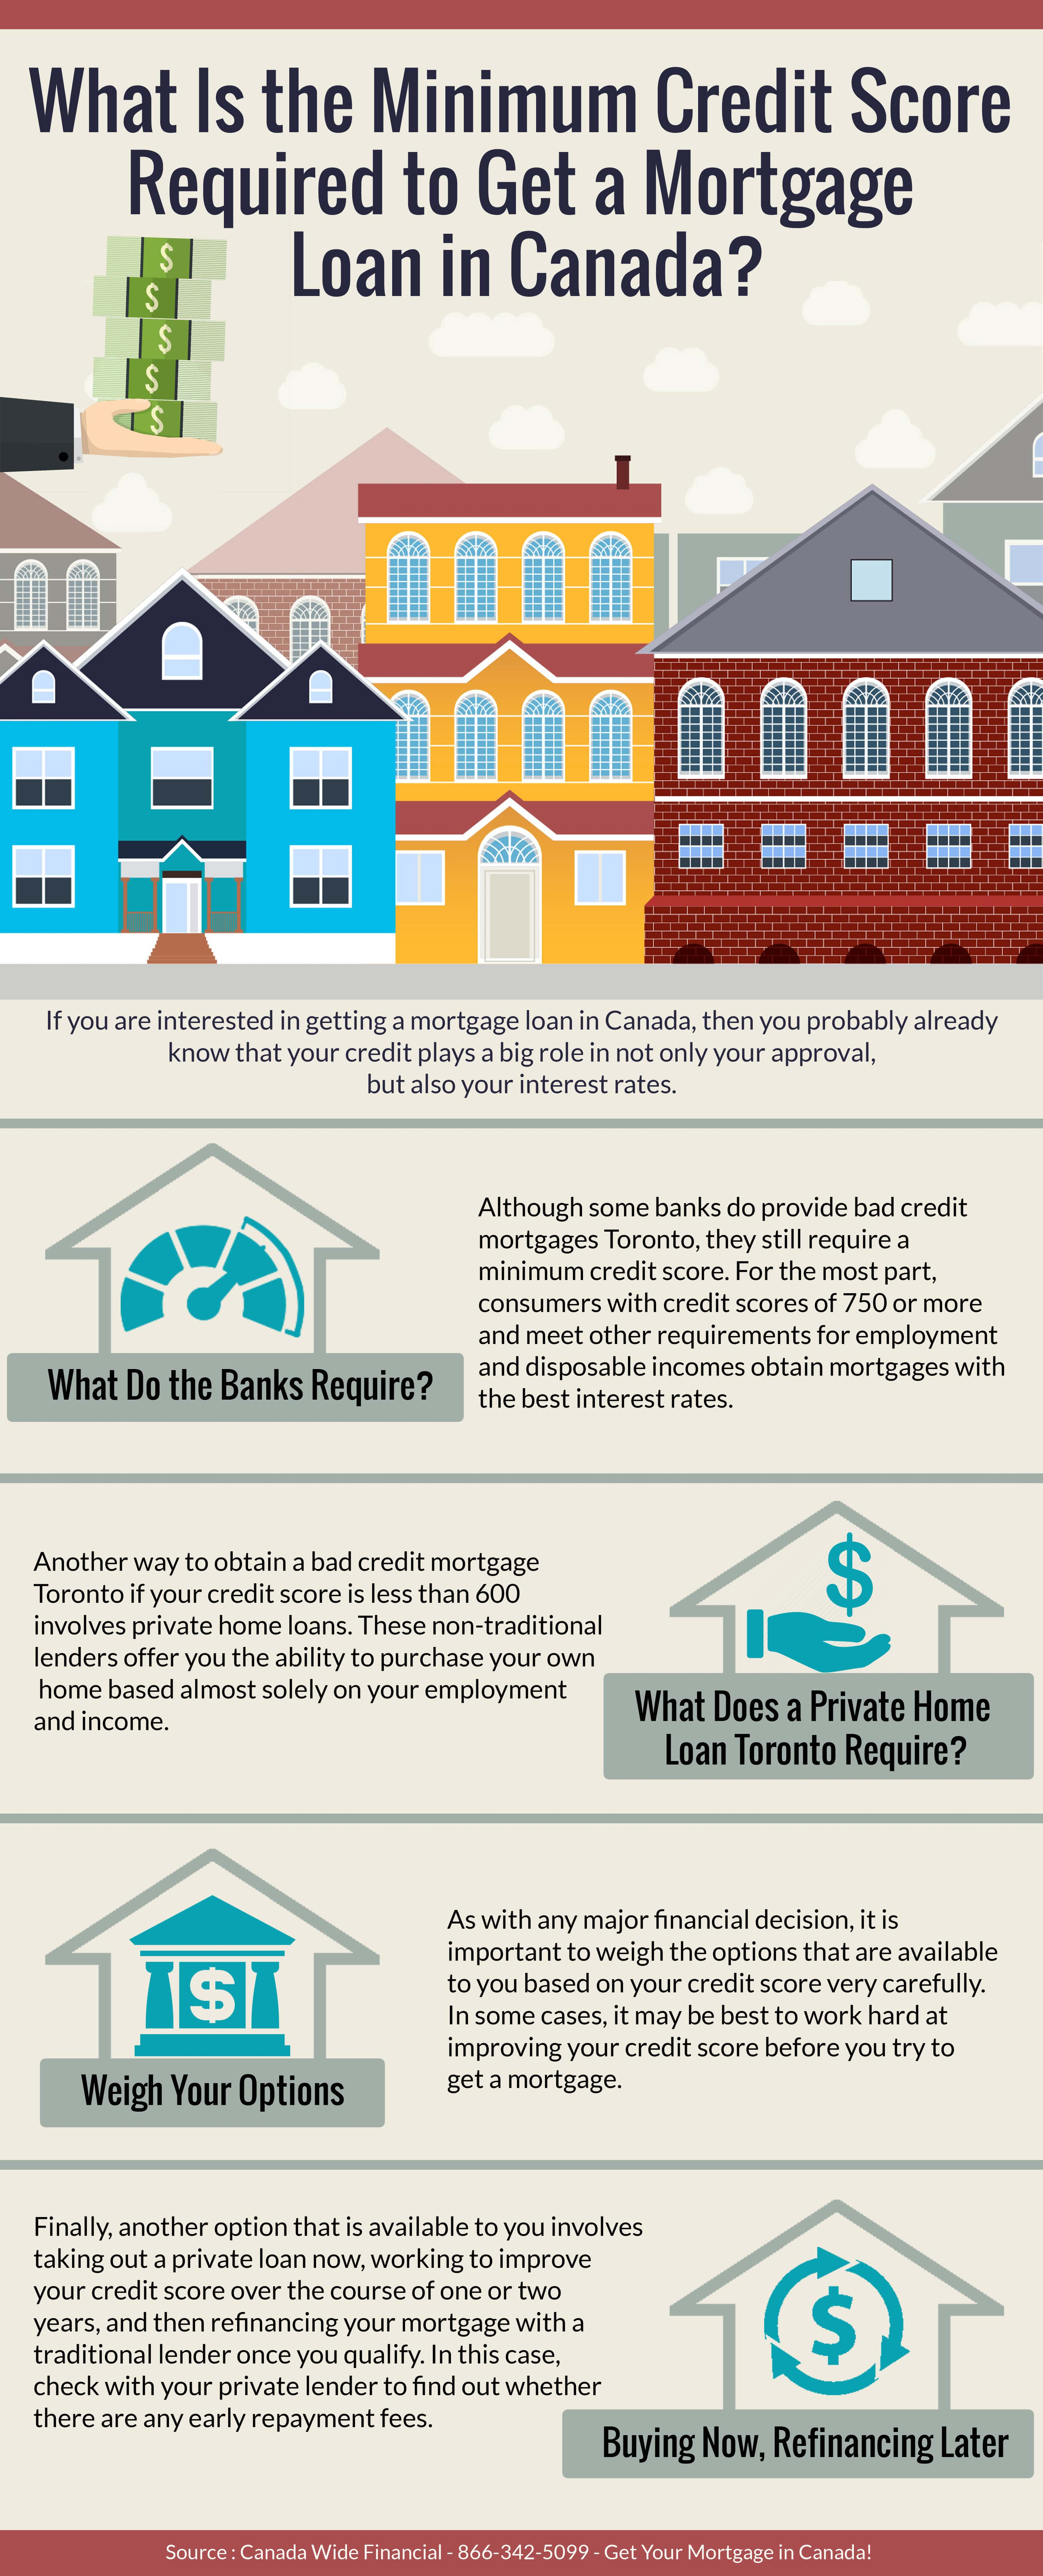 Minimum Credit Score Required to Get a Mortgage Loan in Canada - Infographic